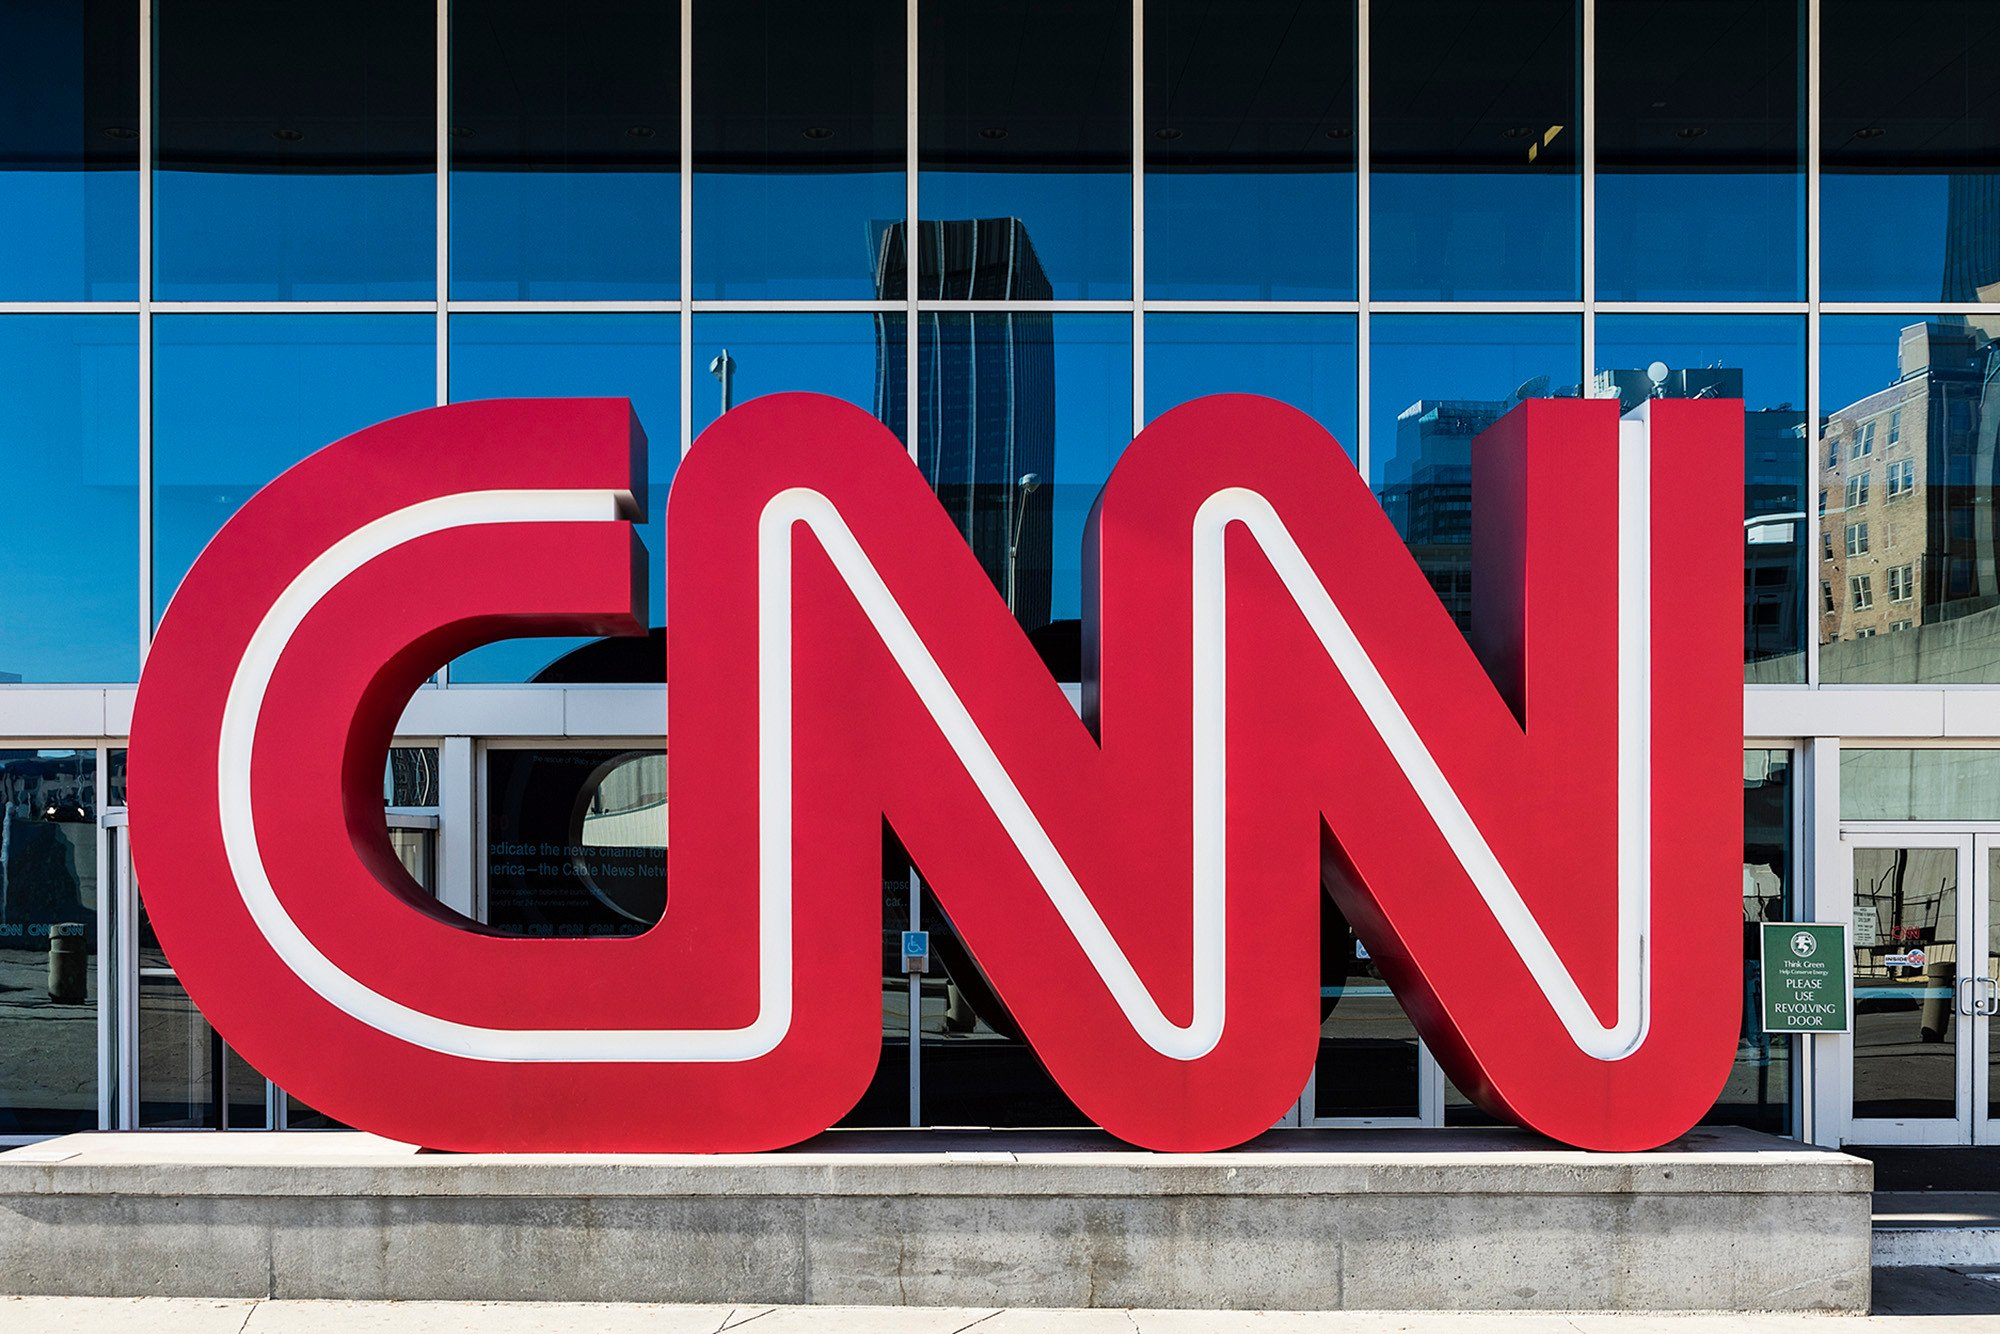 Teen who threatened to shoot up CNN also targeted Islamic center